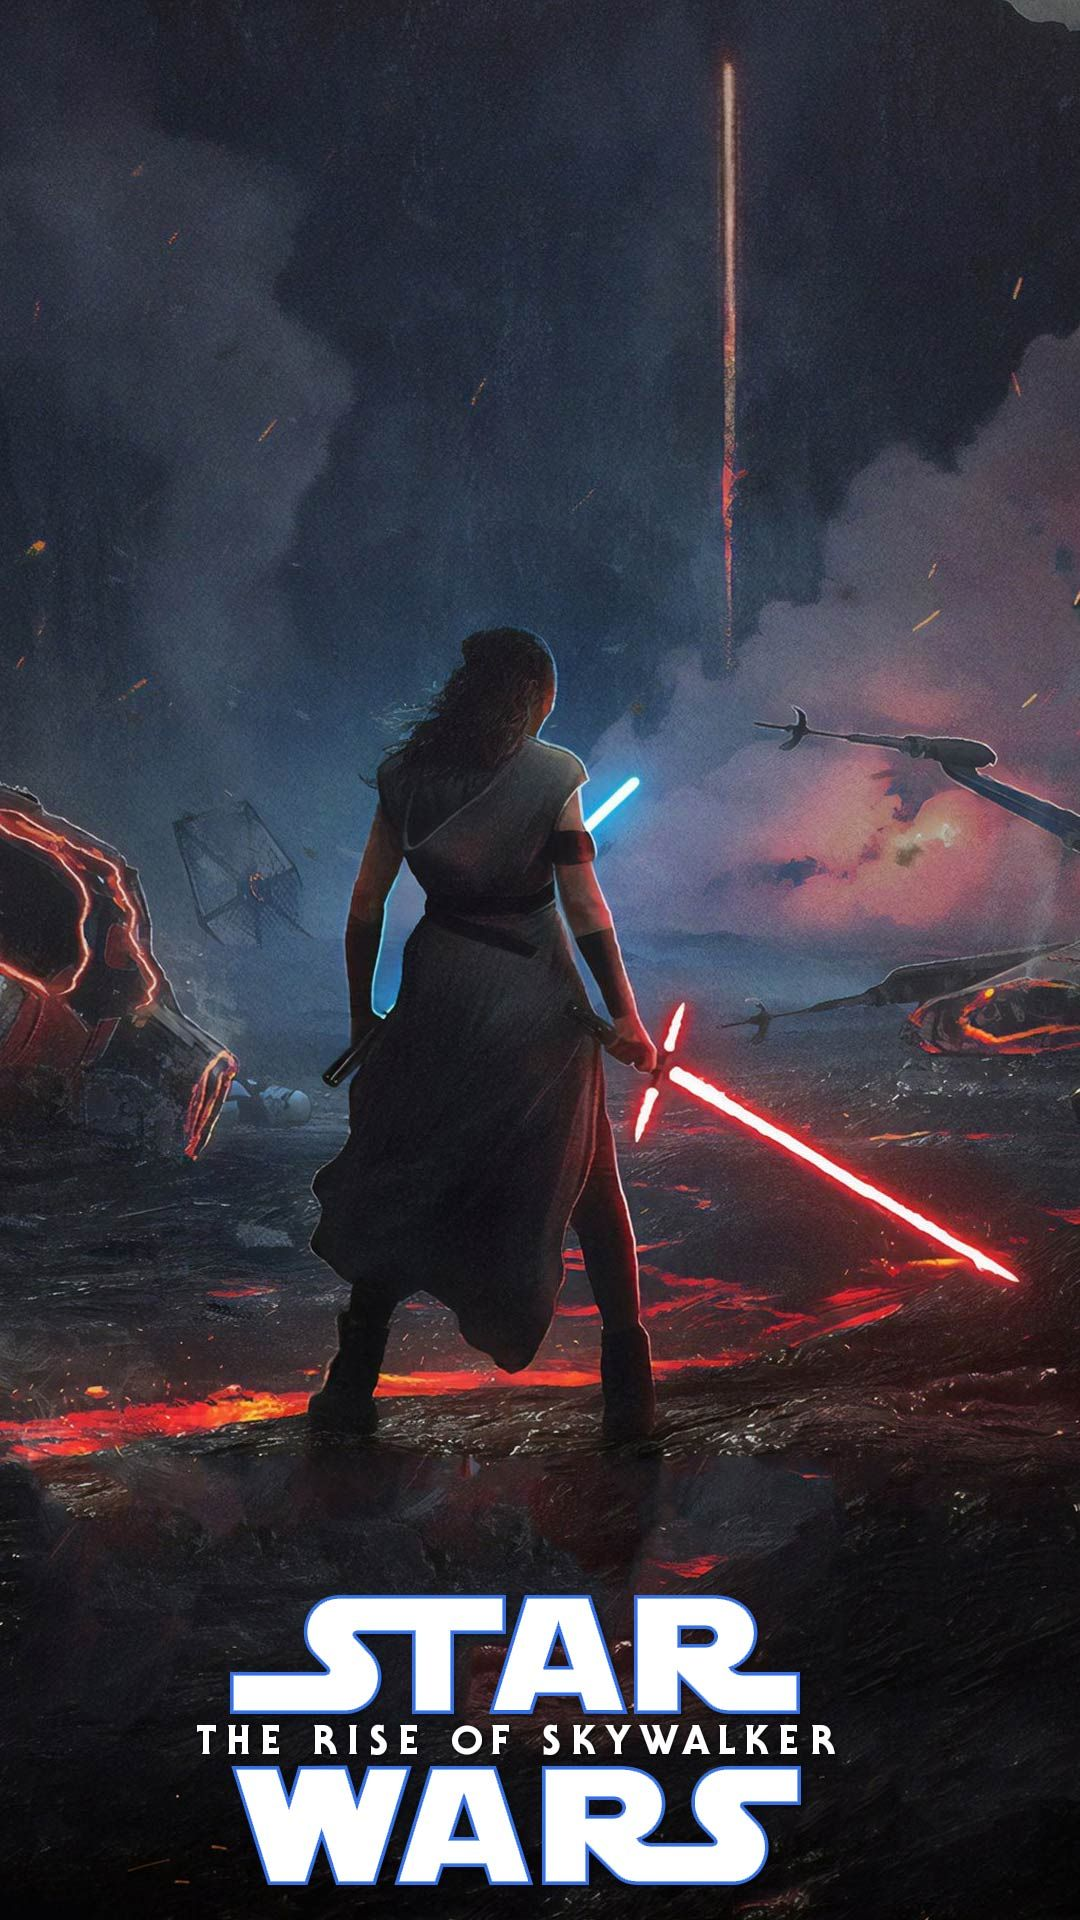 10 Star Wars The Rise Of Skywalker Wallpaper Hd Phone Backgrounds Iphone Android Characters Art Star Wars Background Star Wars Wallpaper Star Wars